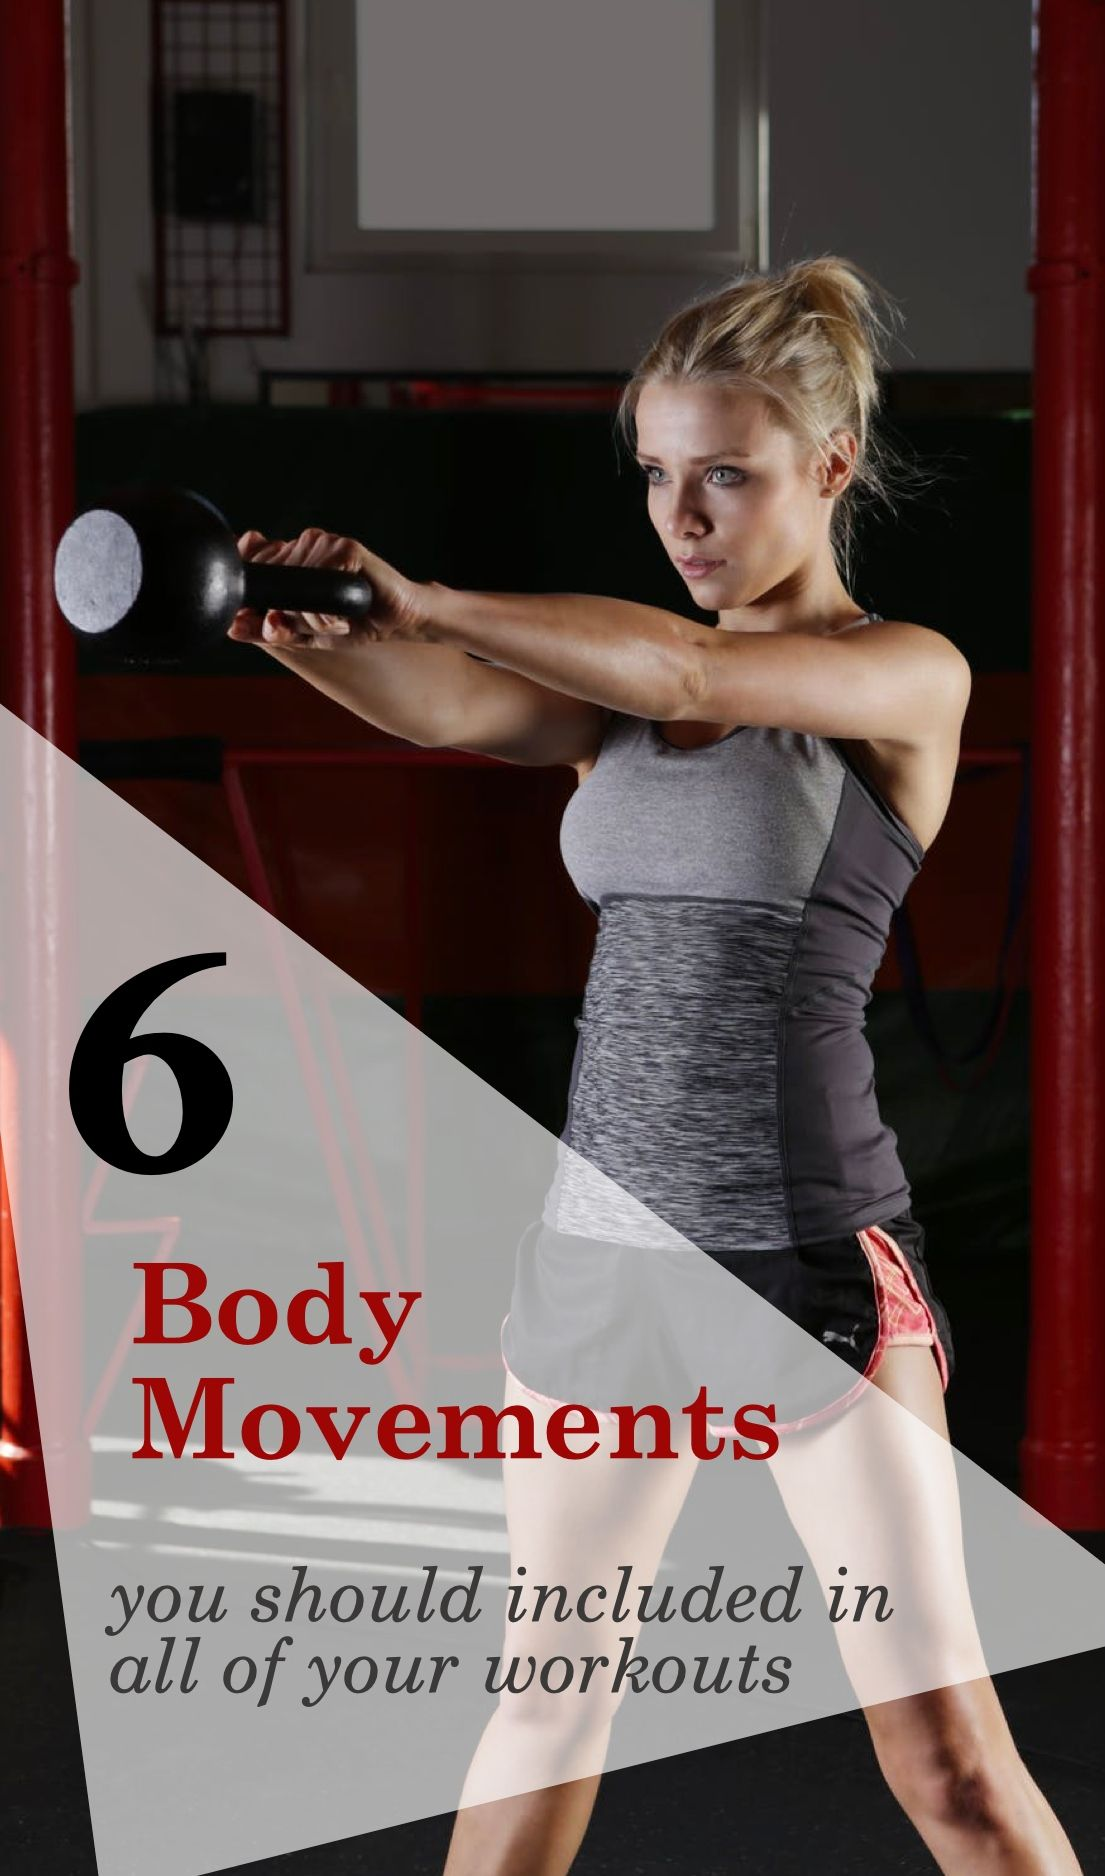 A well rounded, full-body fitness routine or program should incorporate six basic movements. Some form of a squat, hinge, vertical press, vertical pull, horizontal press, horizontal pull. #fitness #exercise #gym #workout #activelifestyle #stayingactive